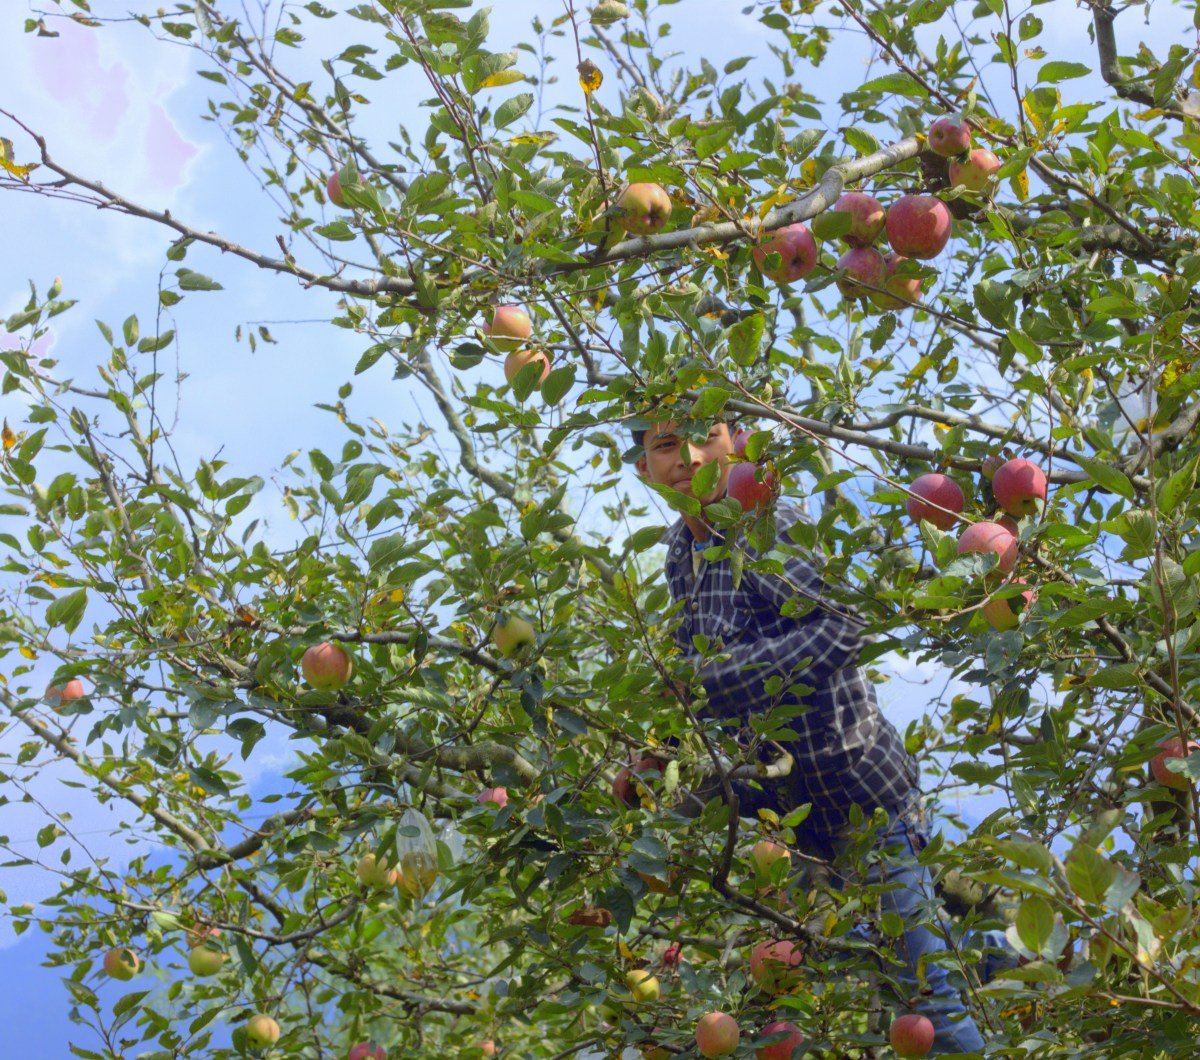 Try fruit picking as an offbeat Manali experience